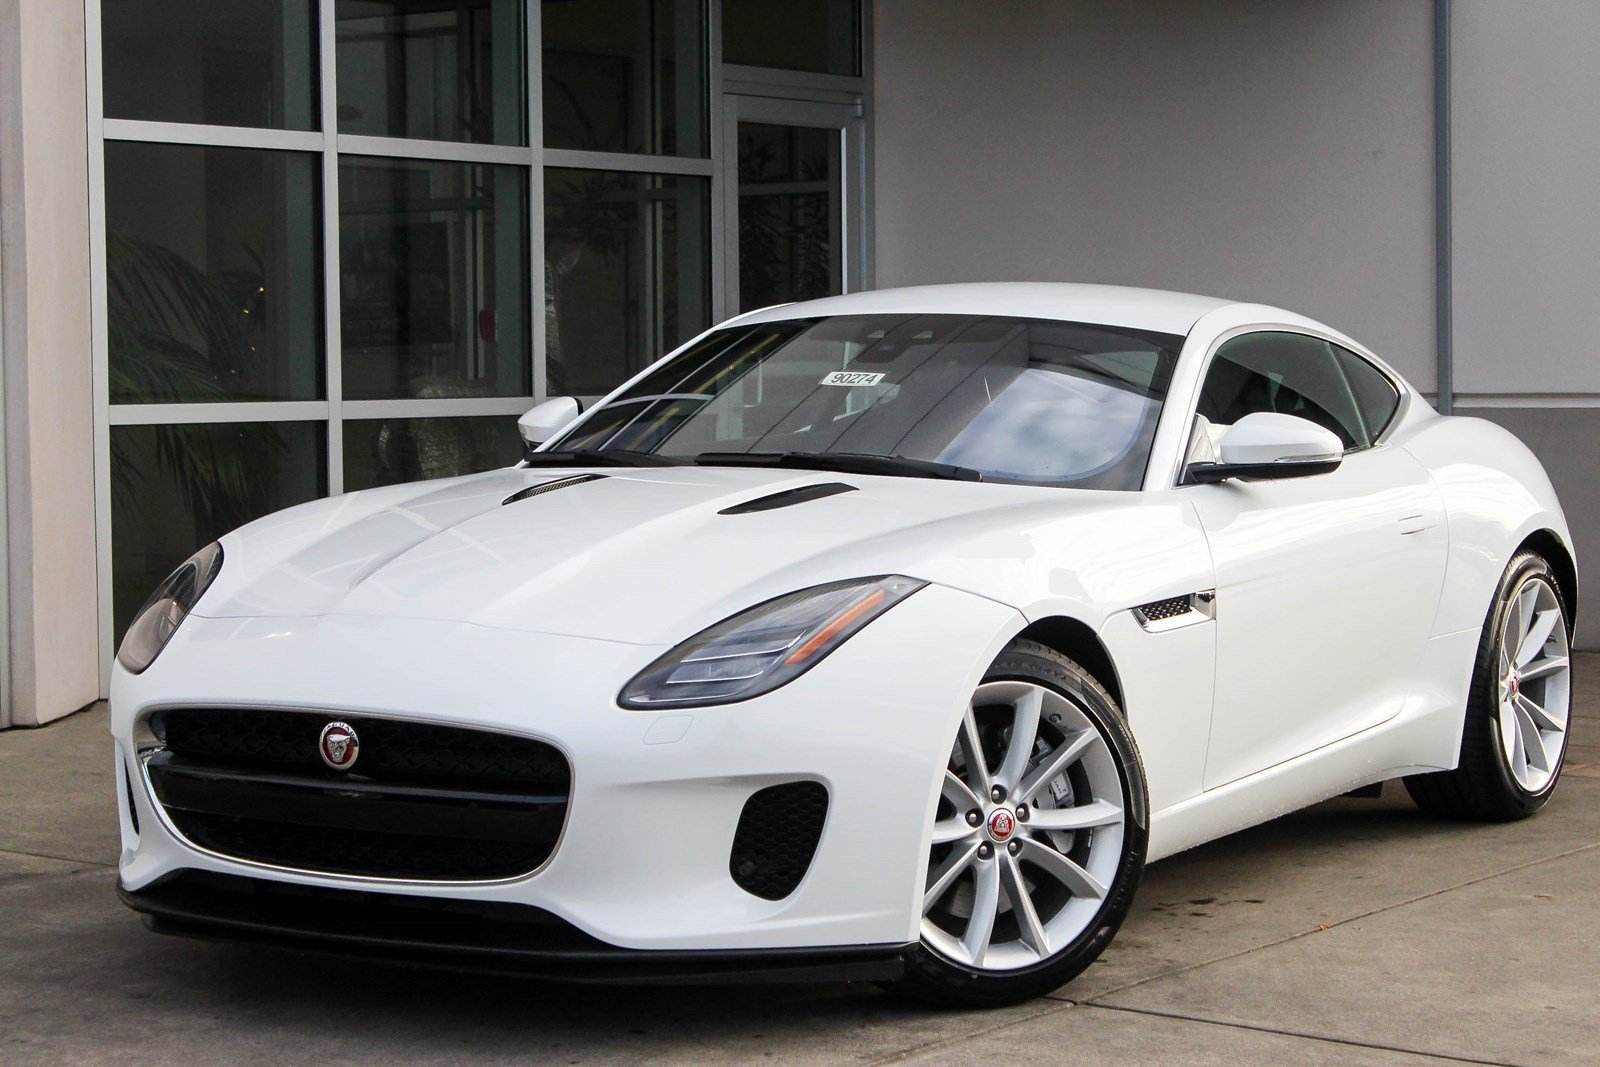 New 2018 Jaguar F-TYPE 296HP